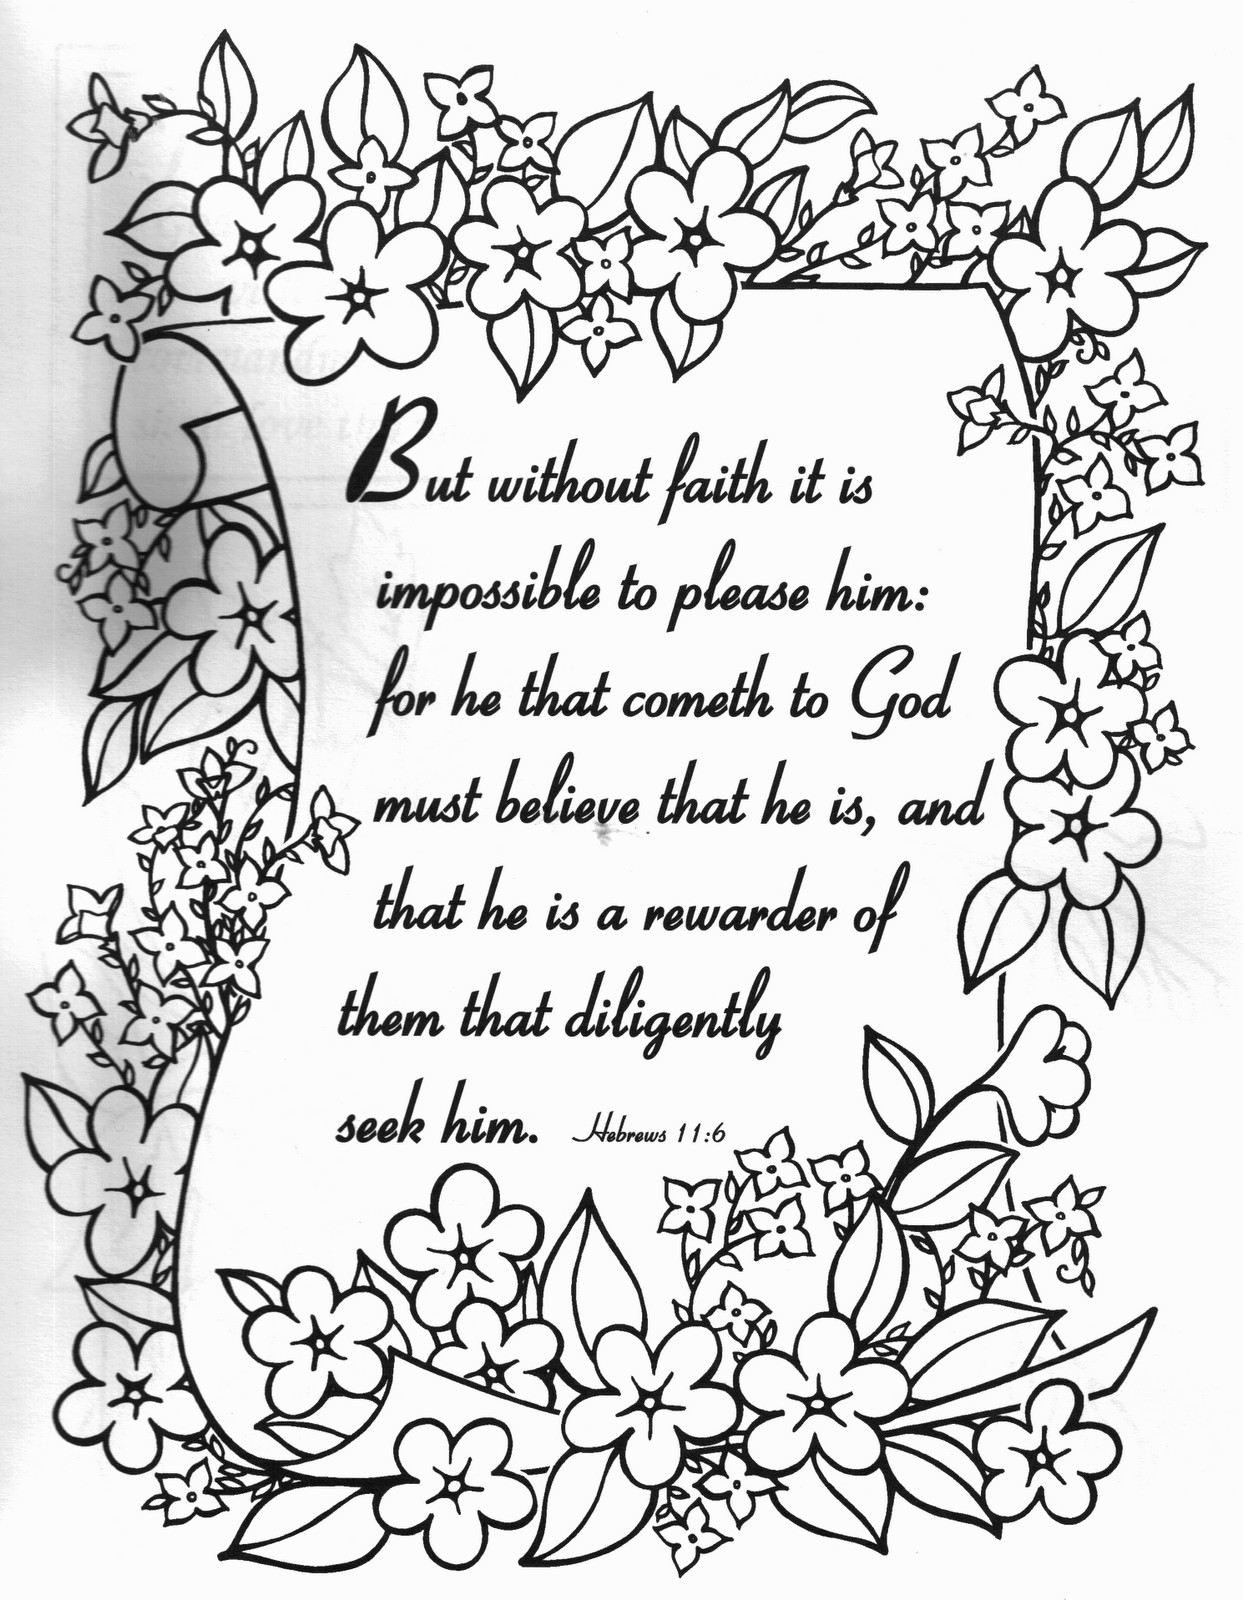 Bible Verses Coloring Pages For Adults  Petersham Bible Book & Tract Depot New Testament Bible